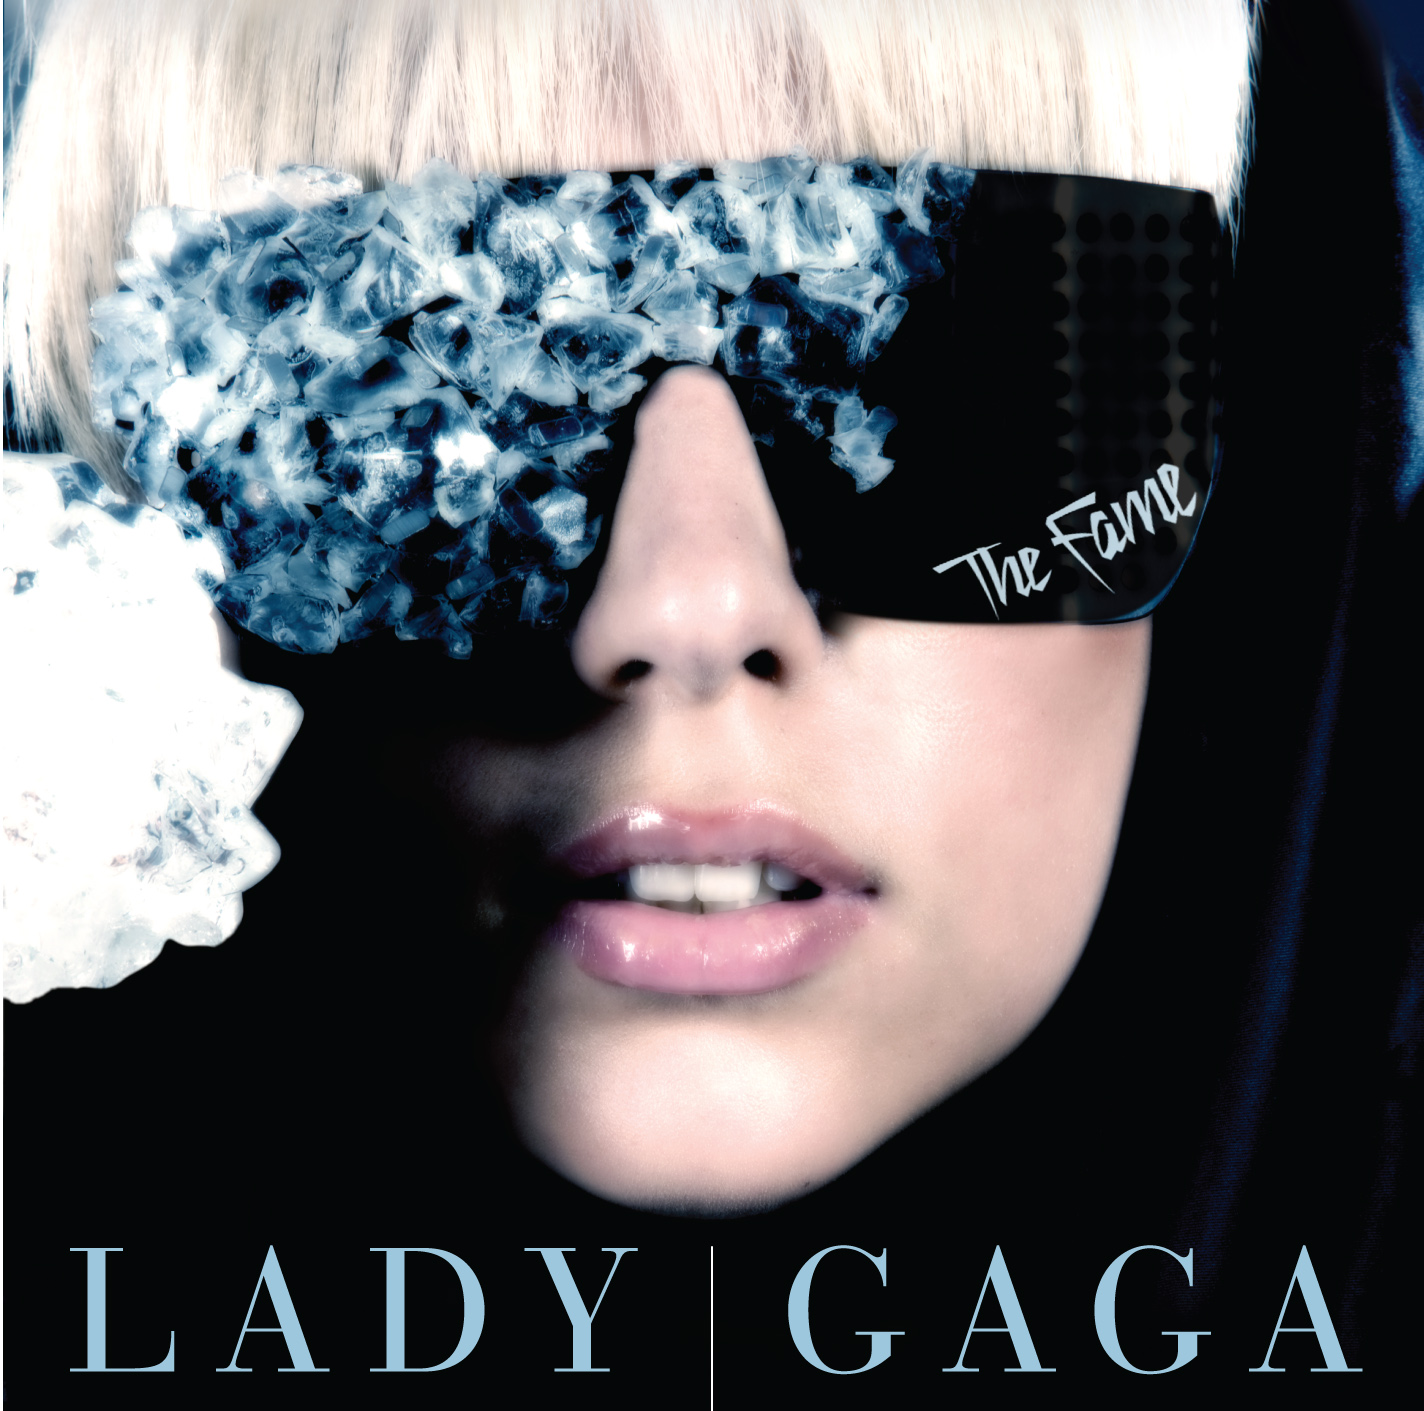 capa delady gaga Mp3paravocebaixar Do What U Want – Lady Gaga 2014